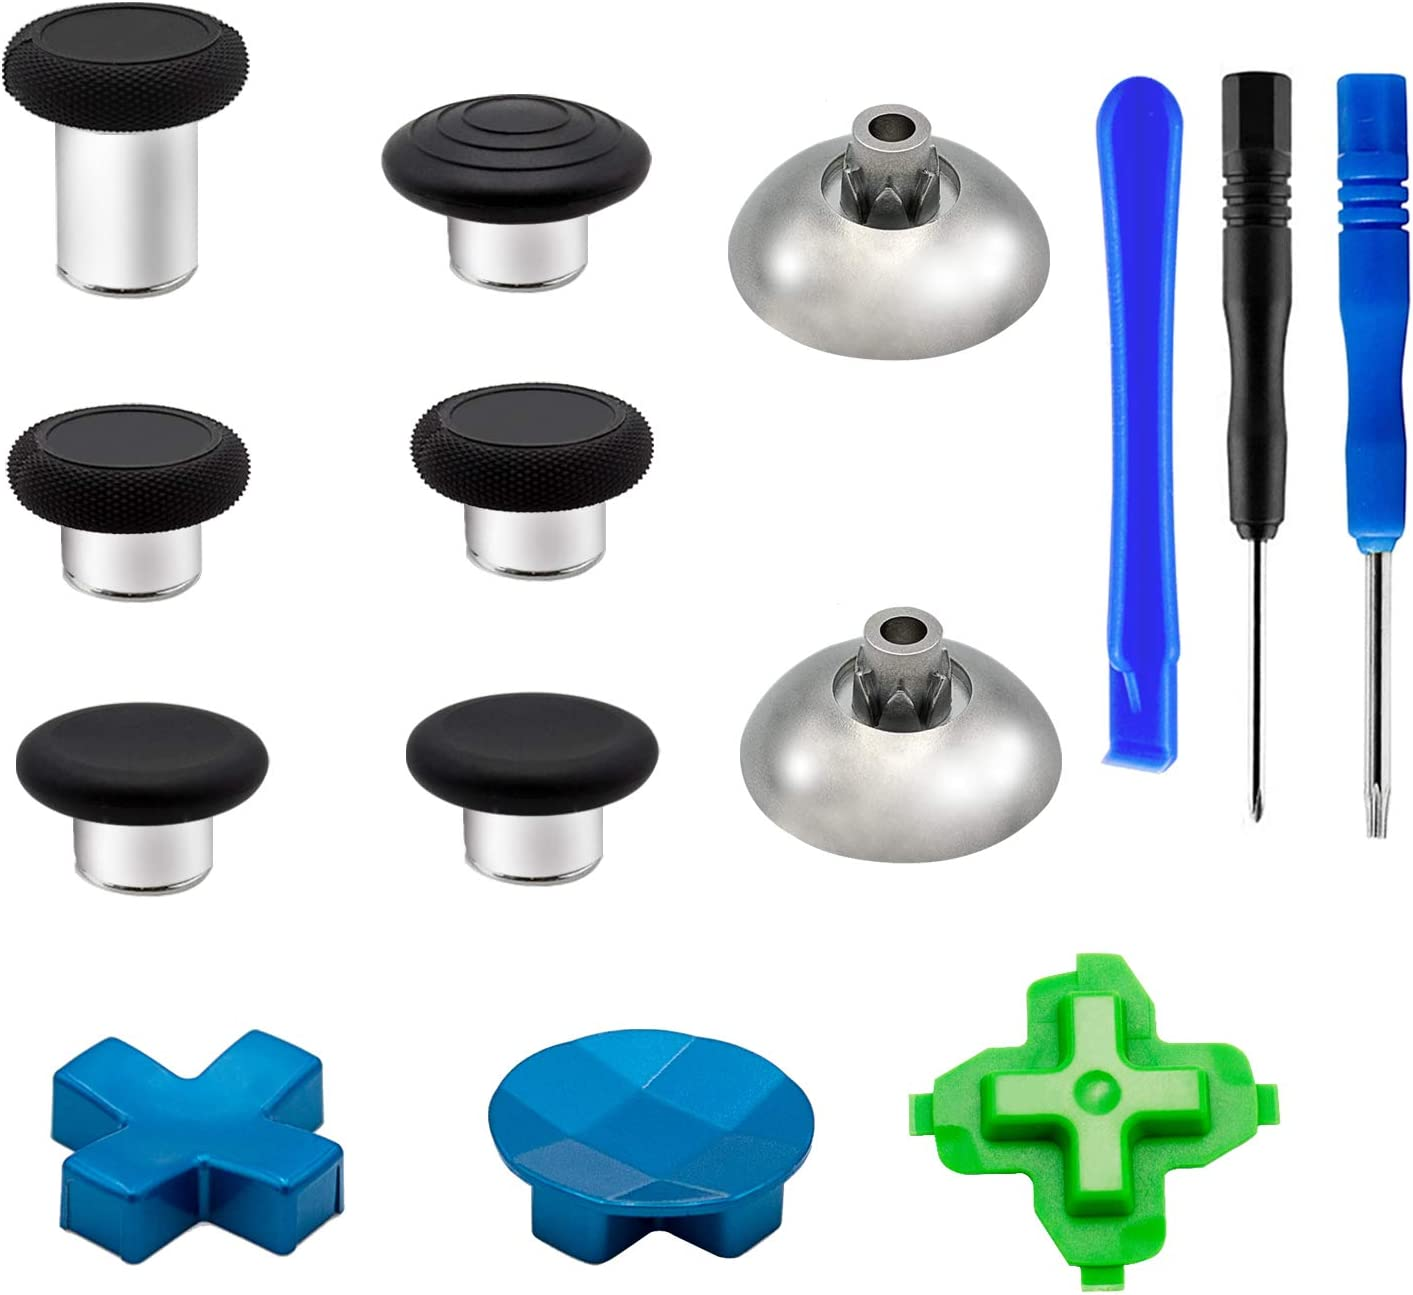 Free shipping anywhere in the nation Max 55% OFF 6 Metal Analog Thumbsticks 2 Magnetic 3 Base D-Pads Kits Re and